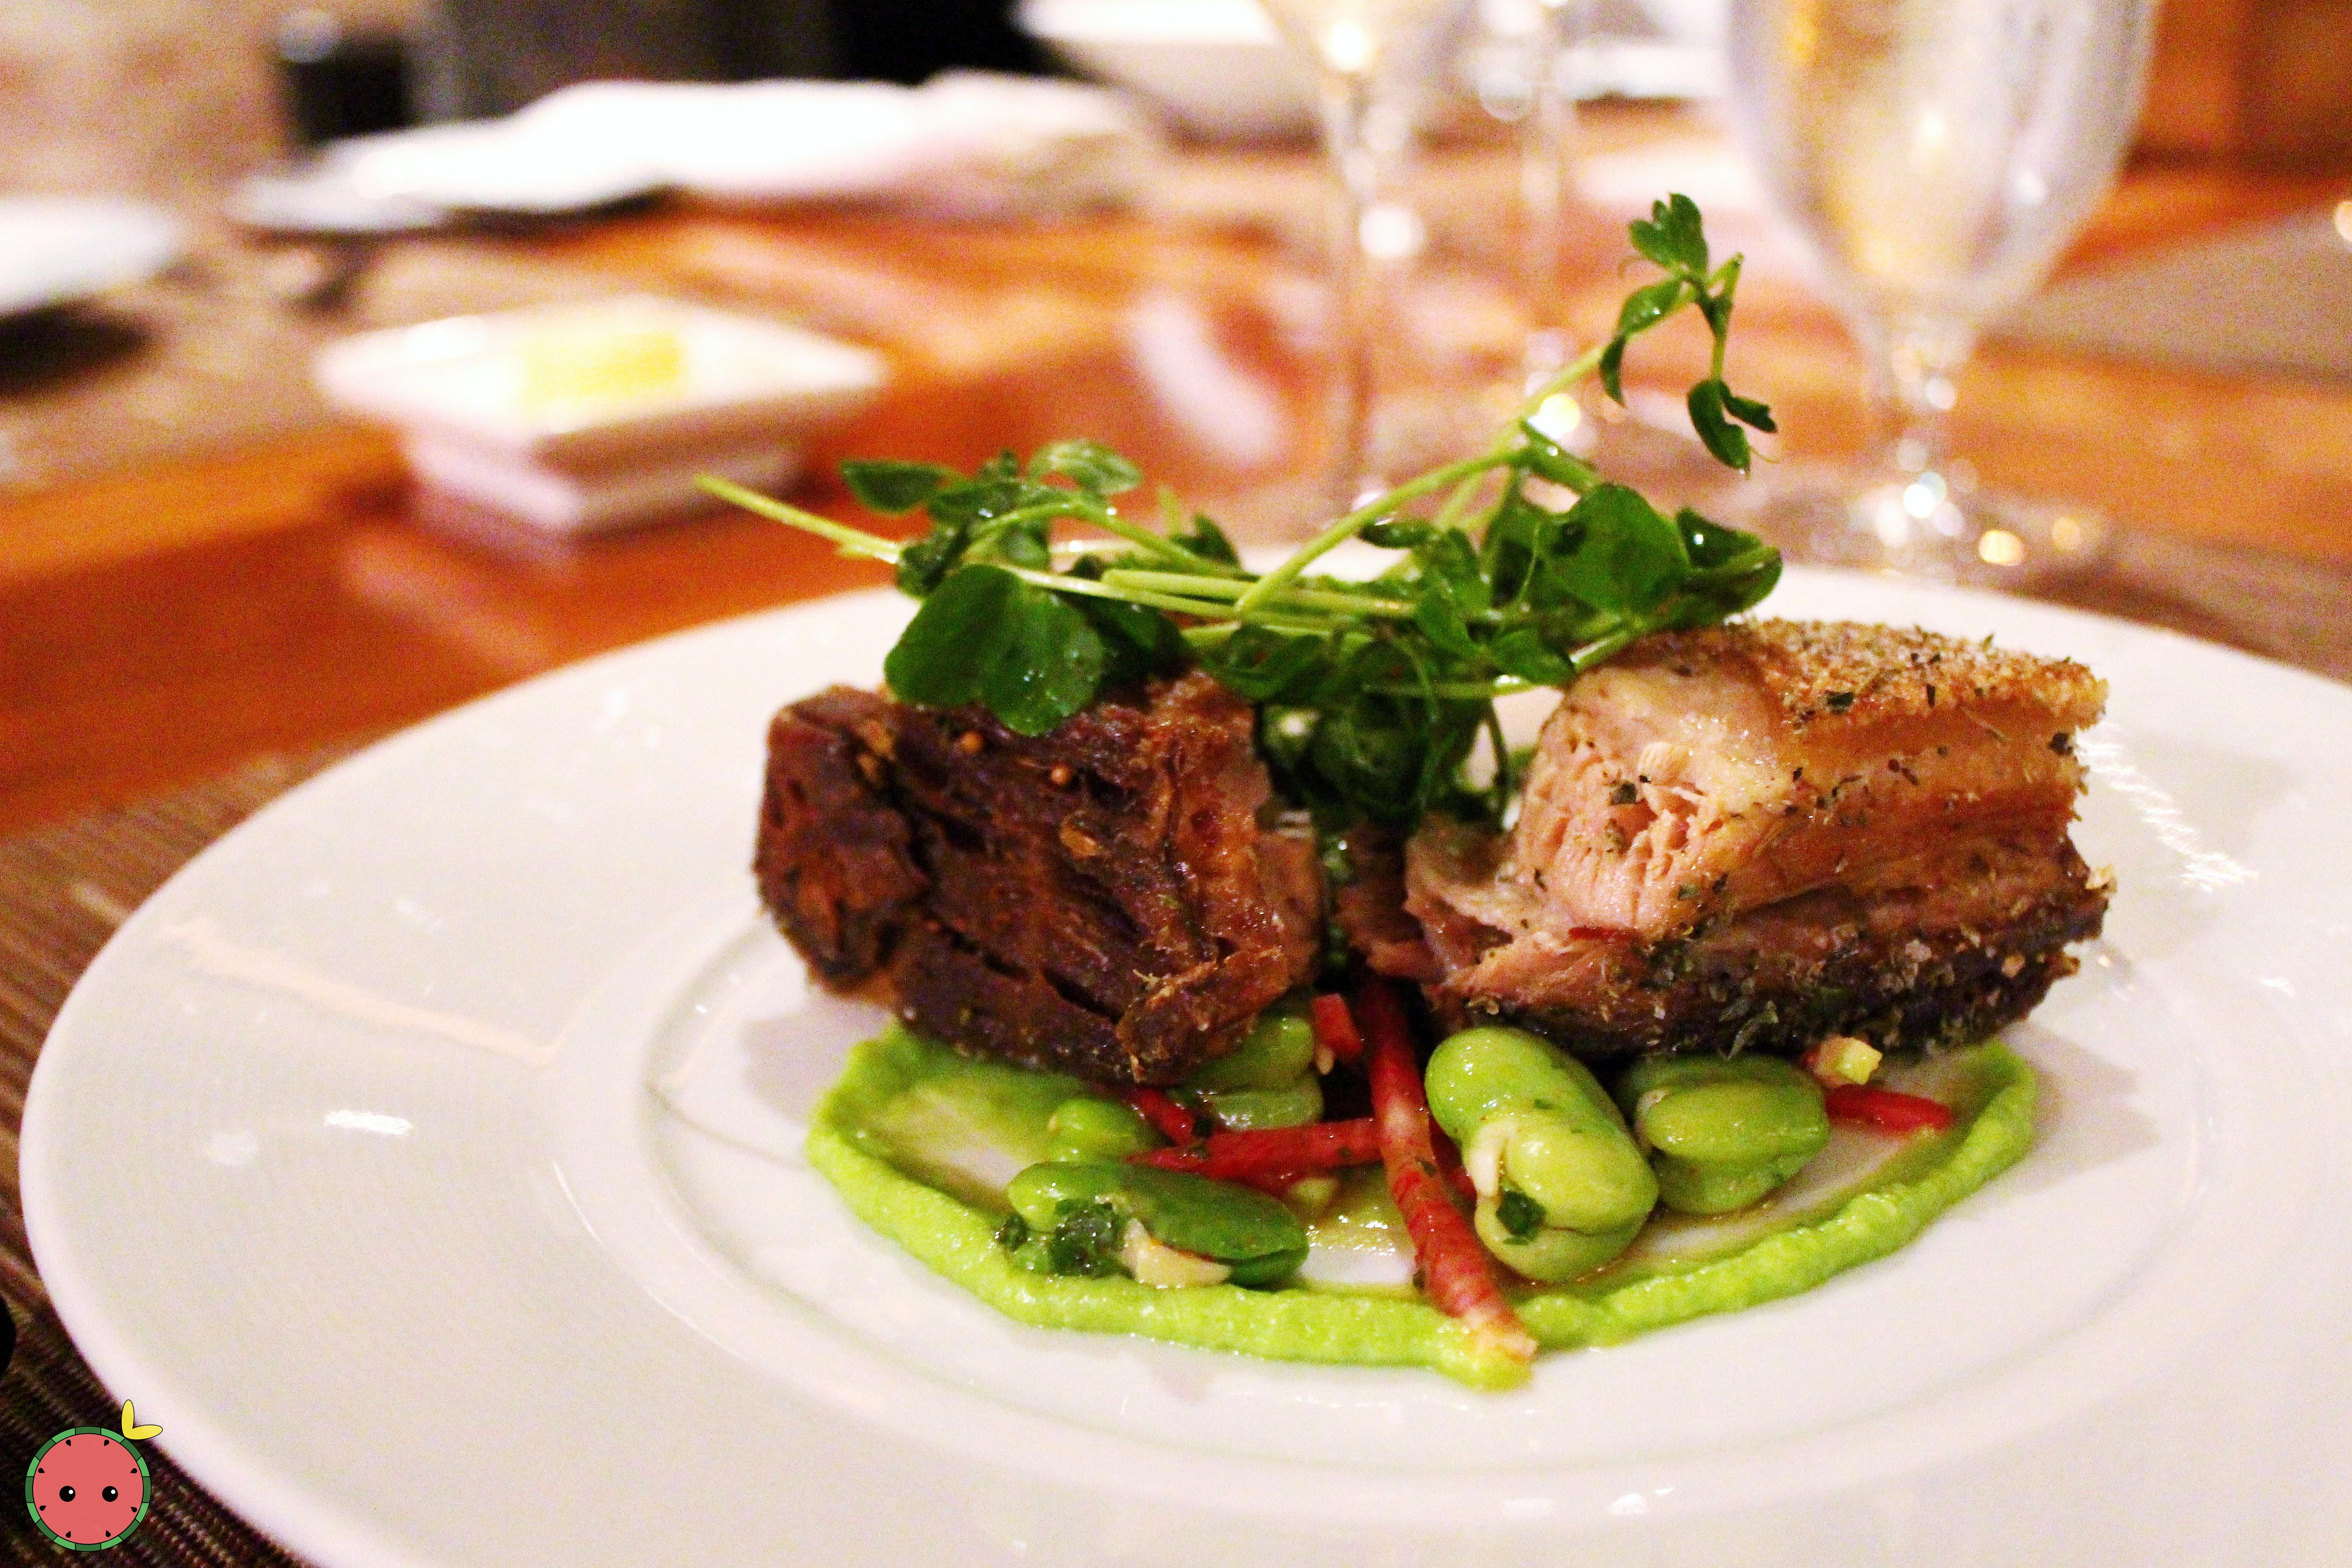 Crispy pork belly, fava beans, and lemon